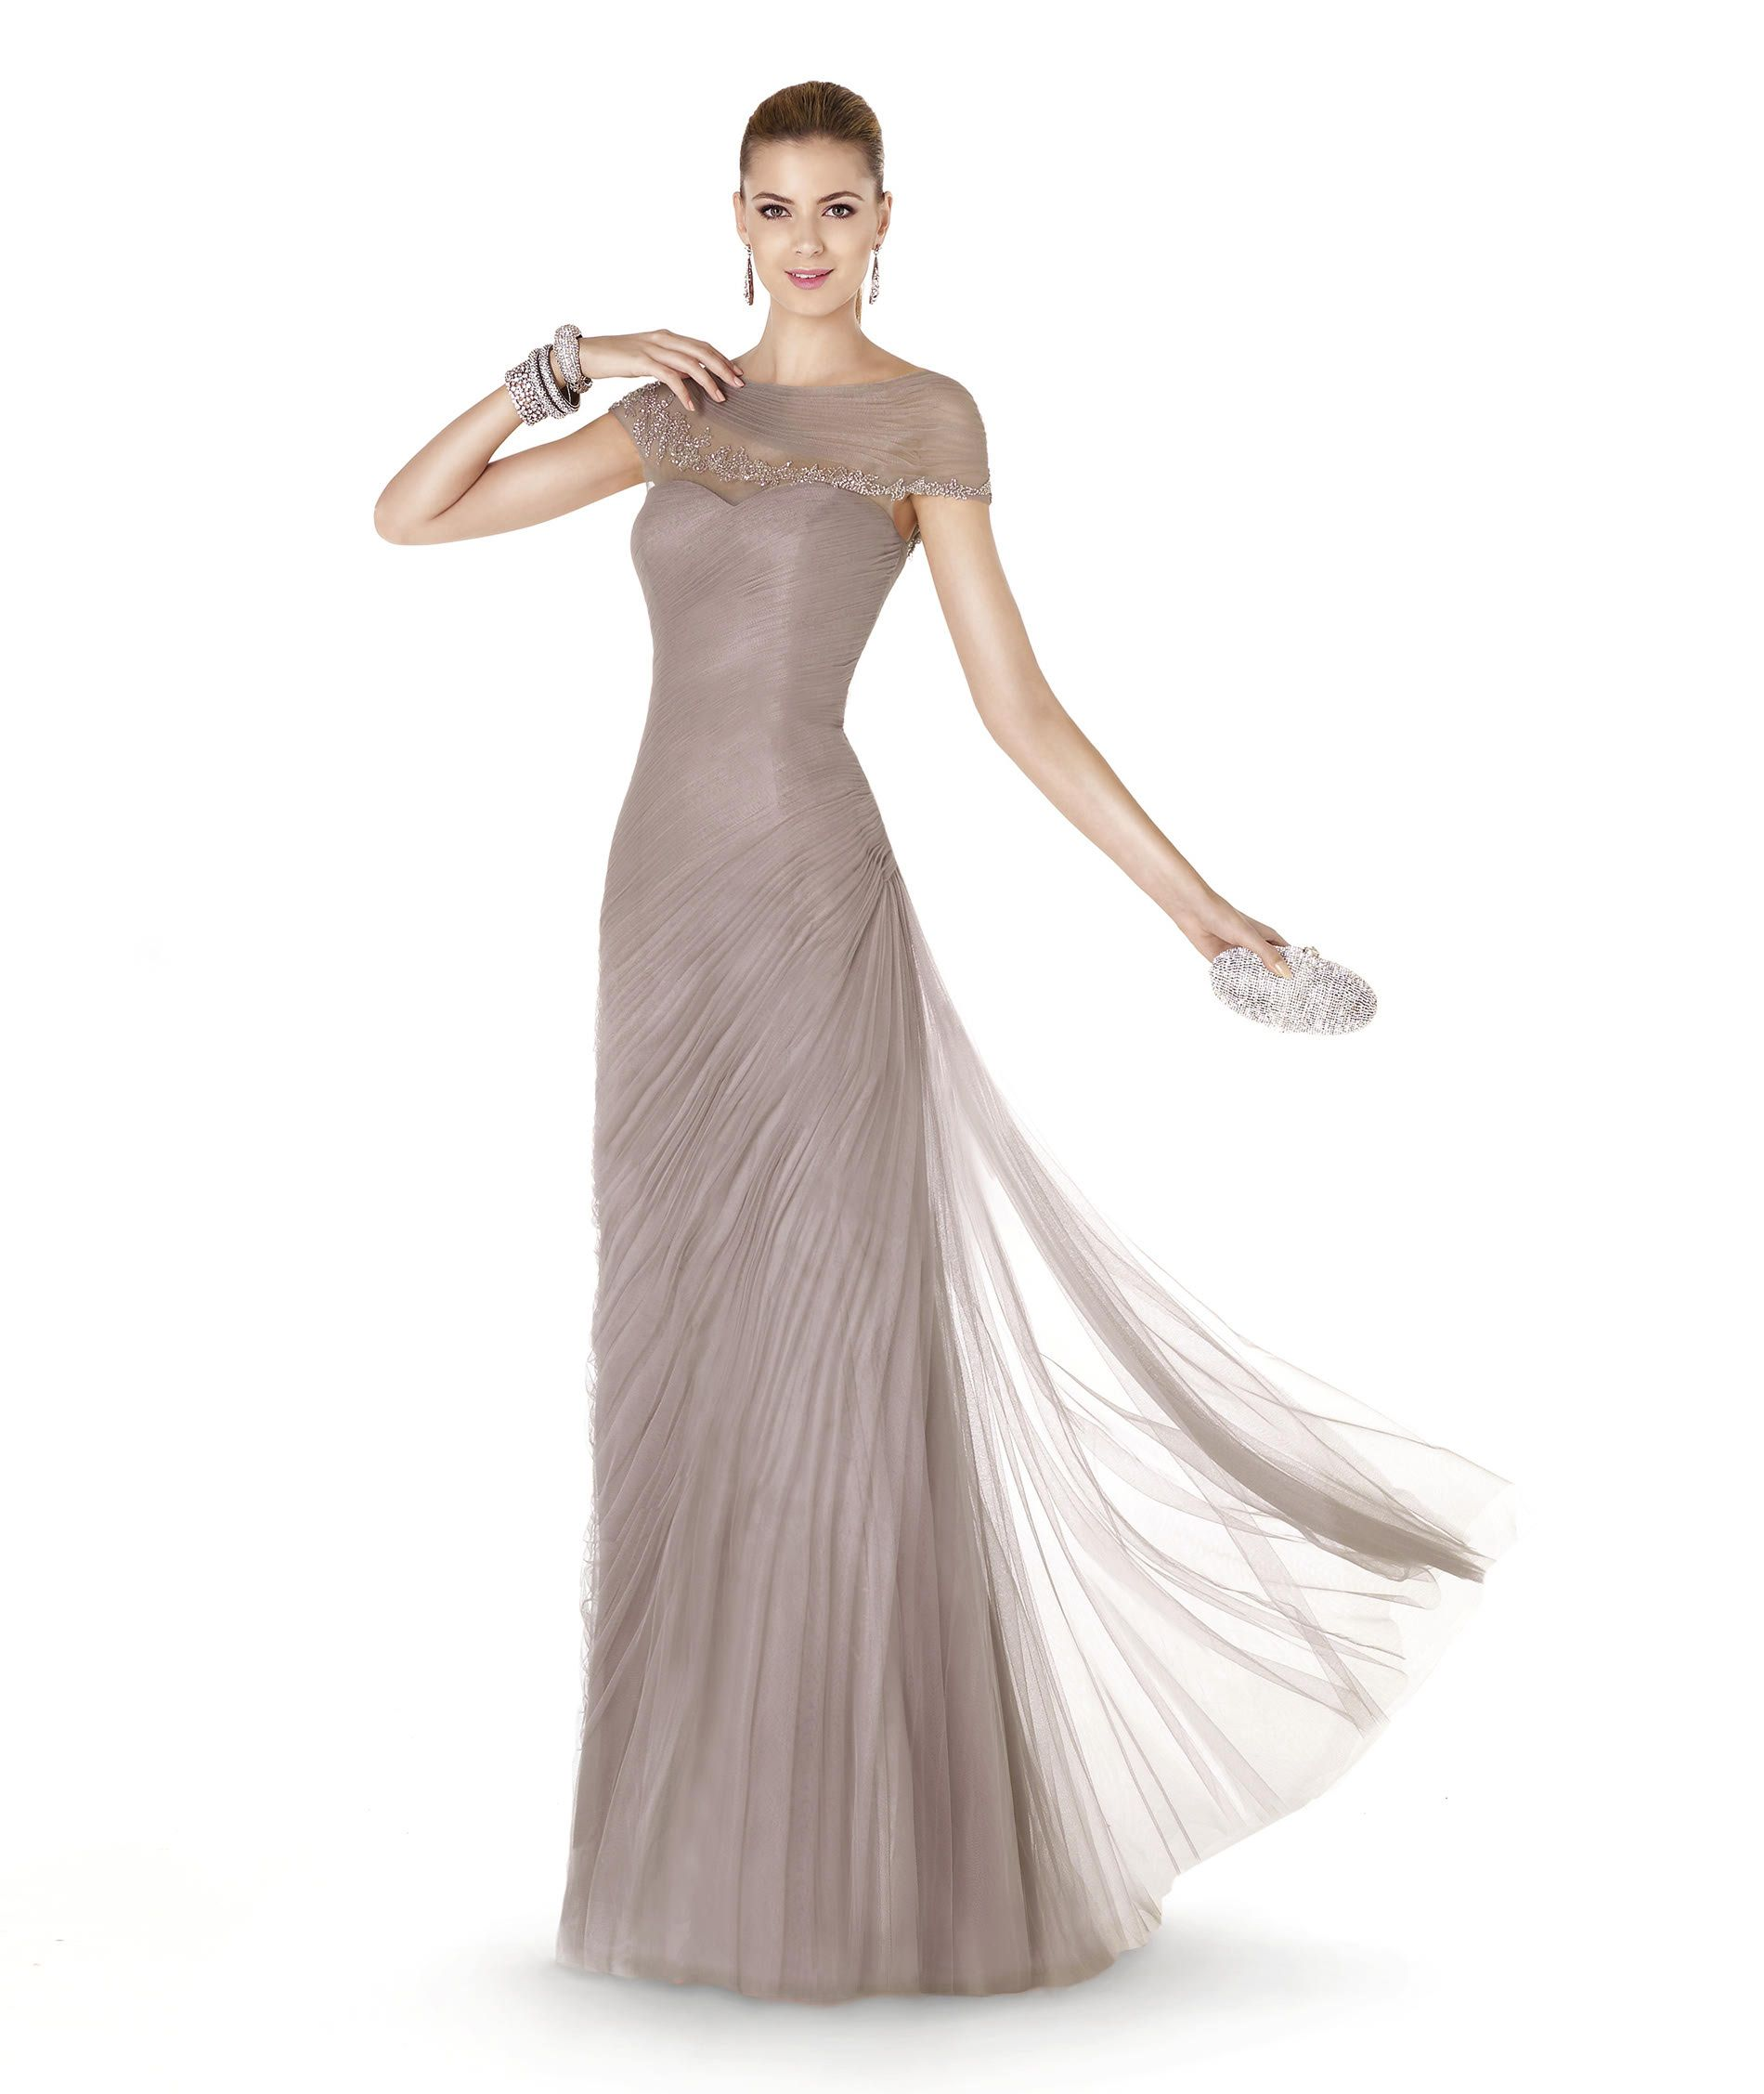 5acdc85f5a Pronovias presents the ALABASTRO cocktail dress from the Cocktail 2015  collection